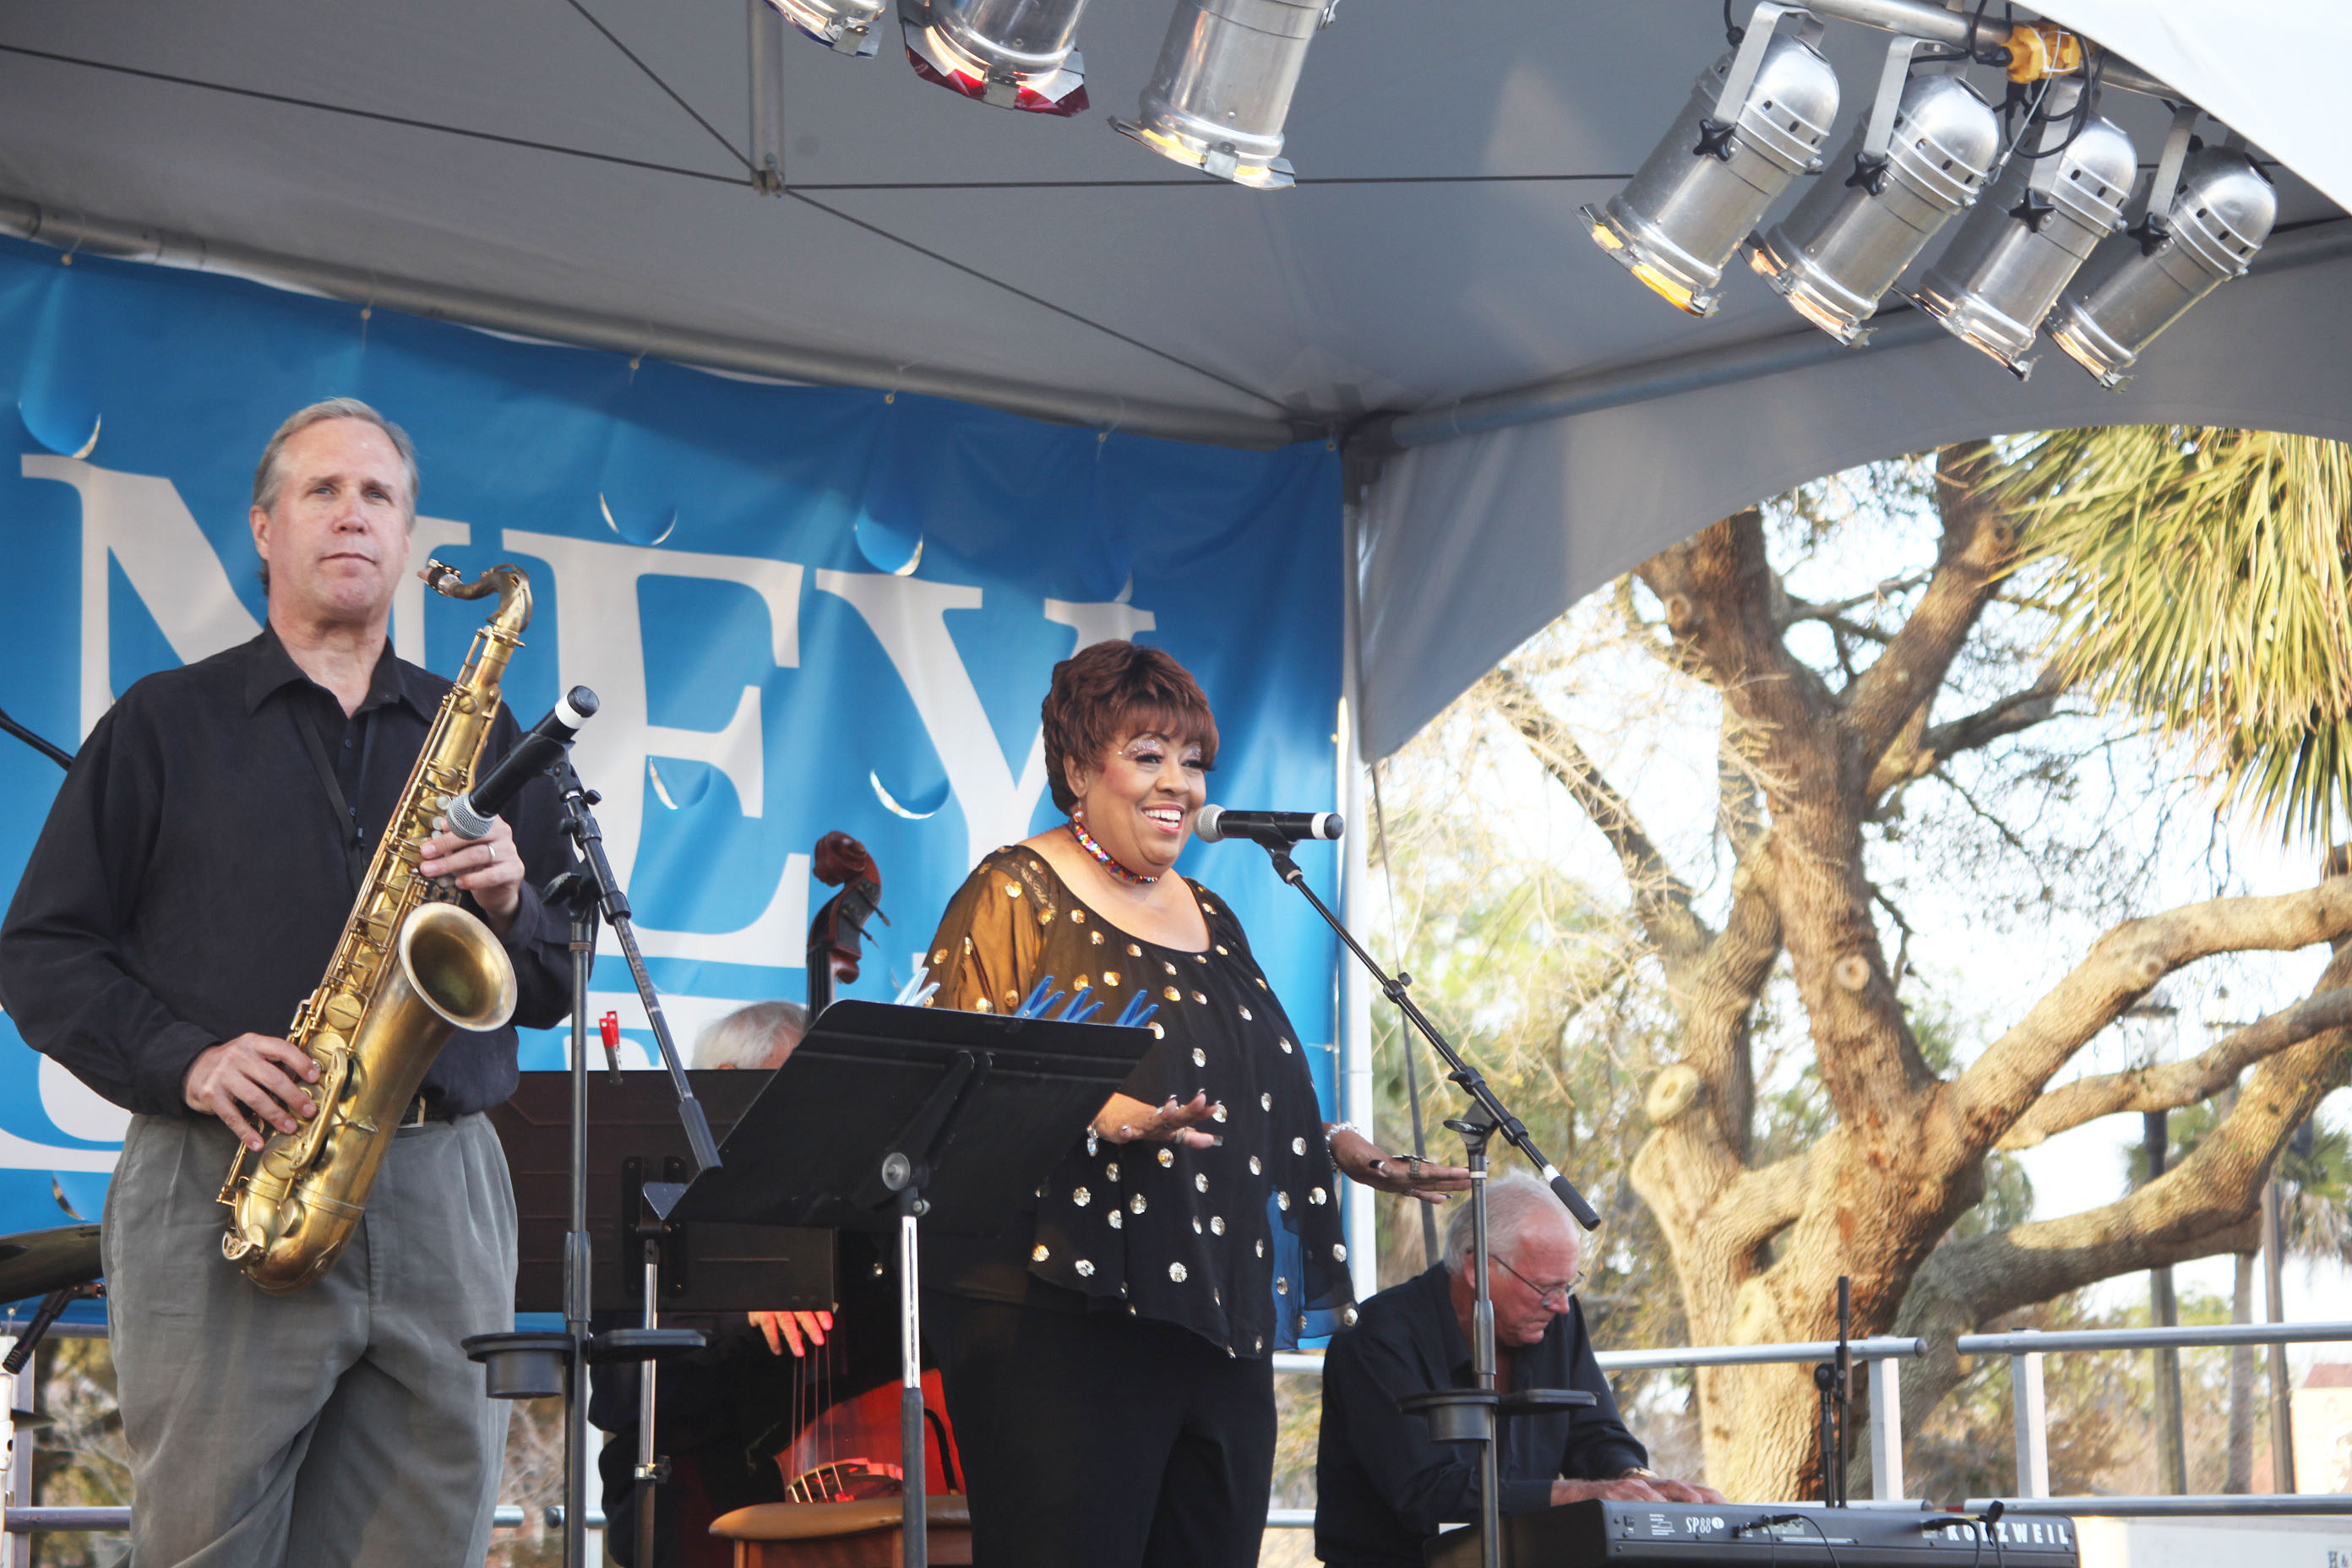 Linda Cole, niece of Nat King Cole, will perform on Friday, March 6 at the St. Augustine Lions Seafood Festival.